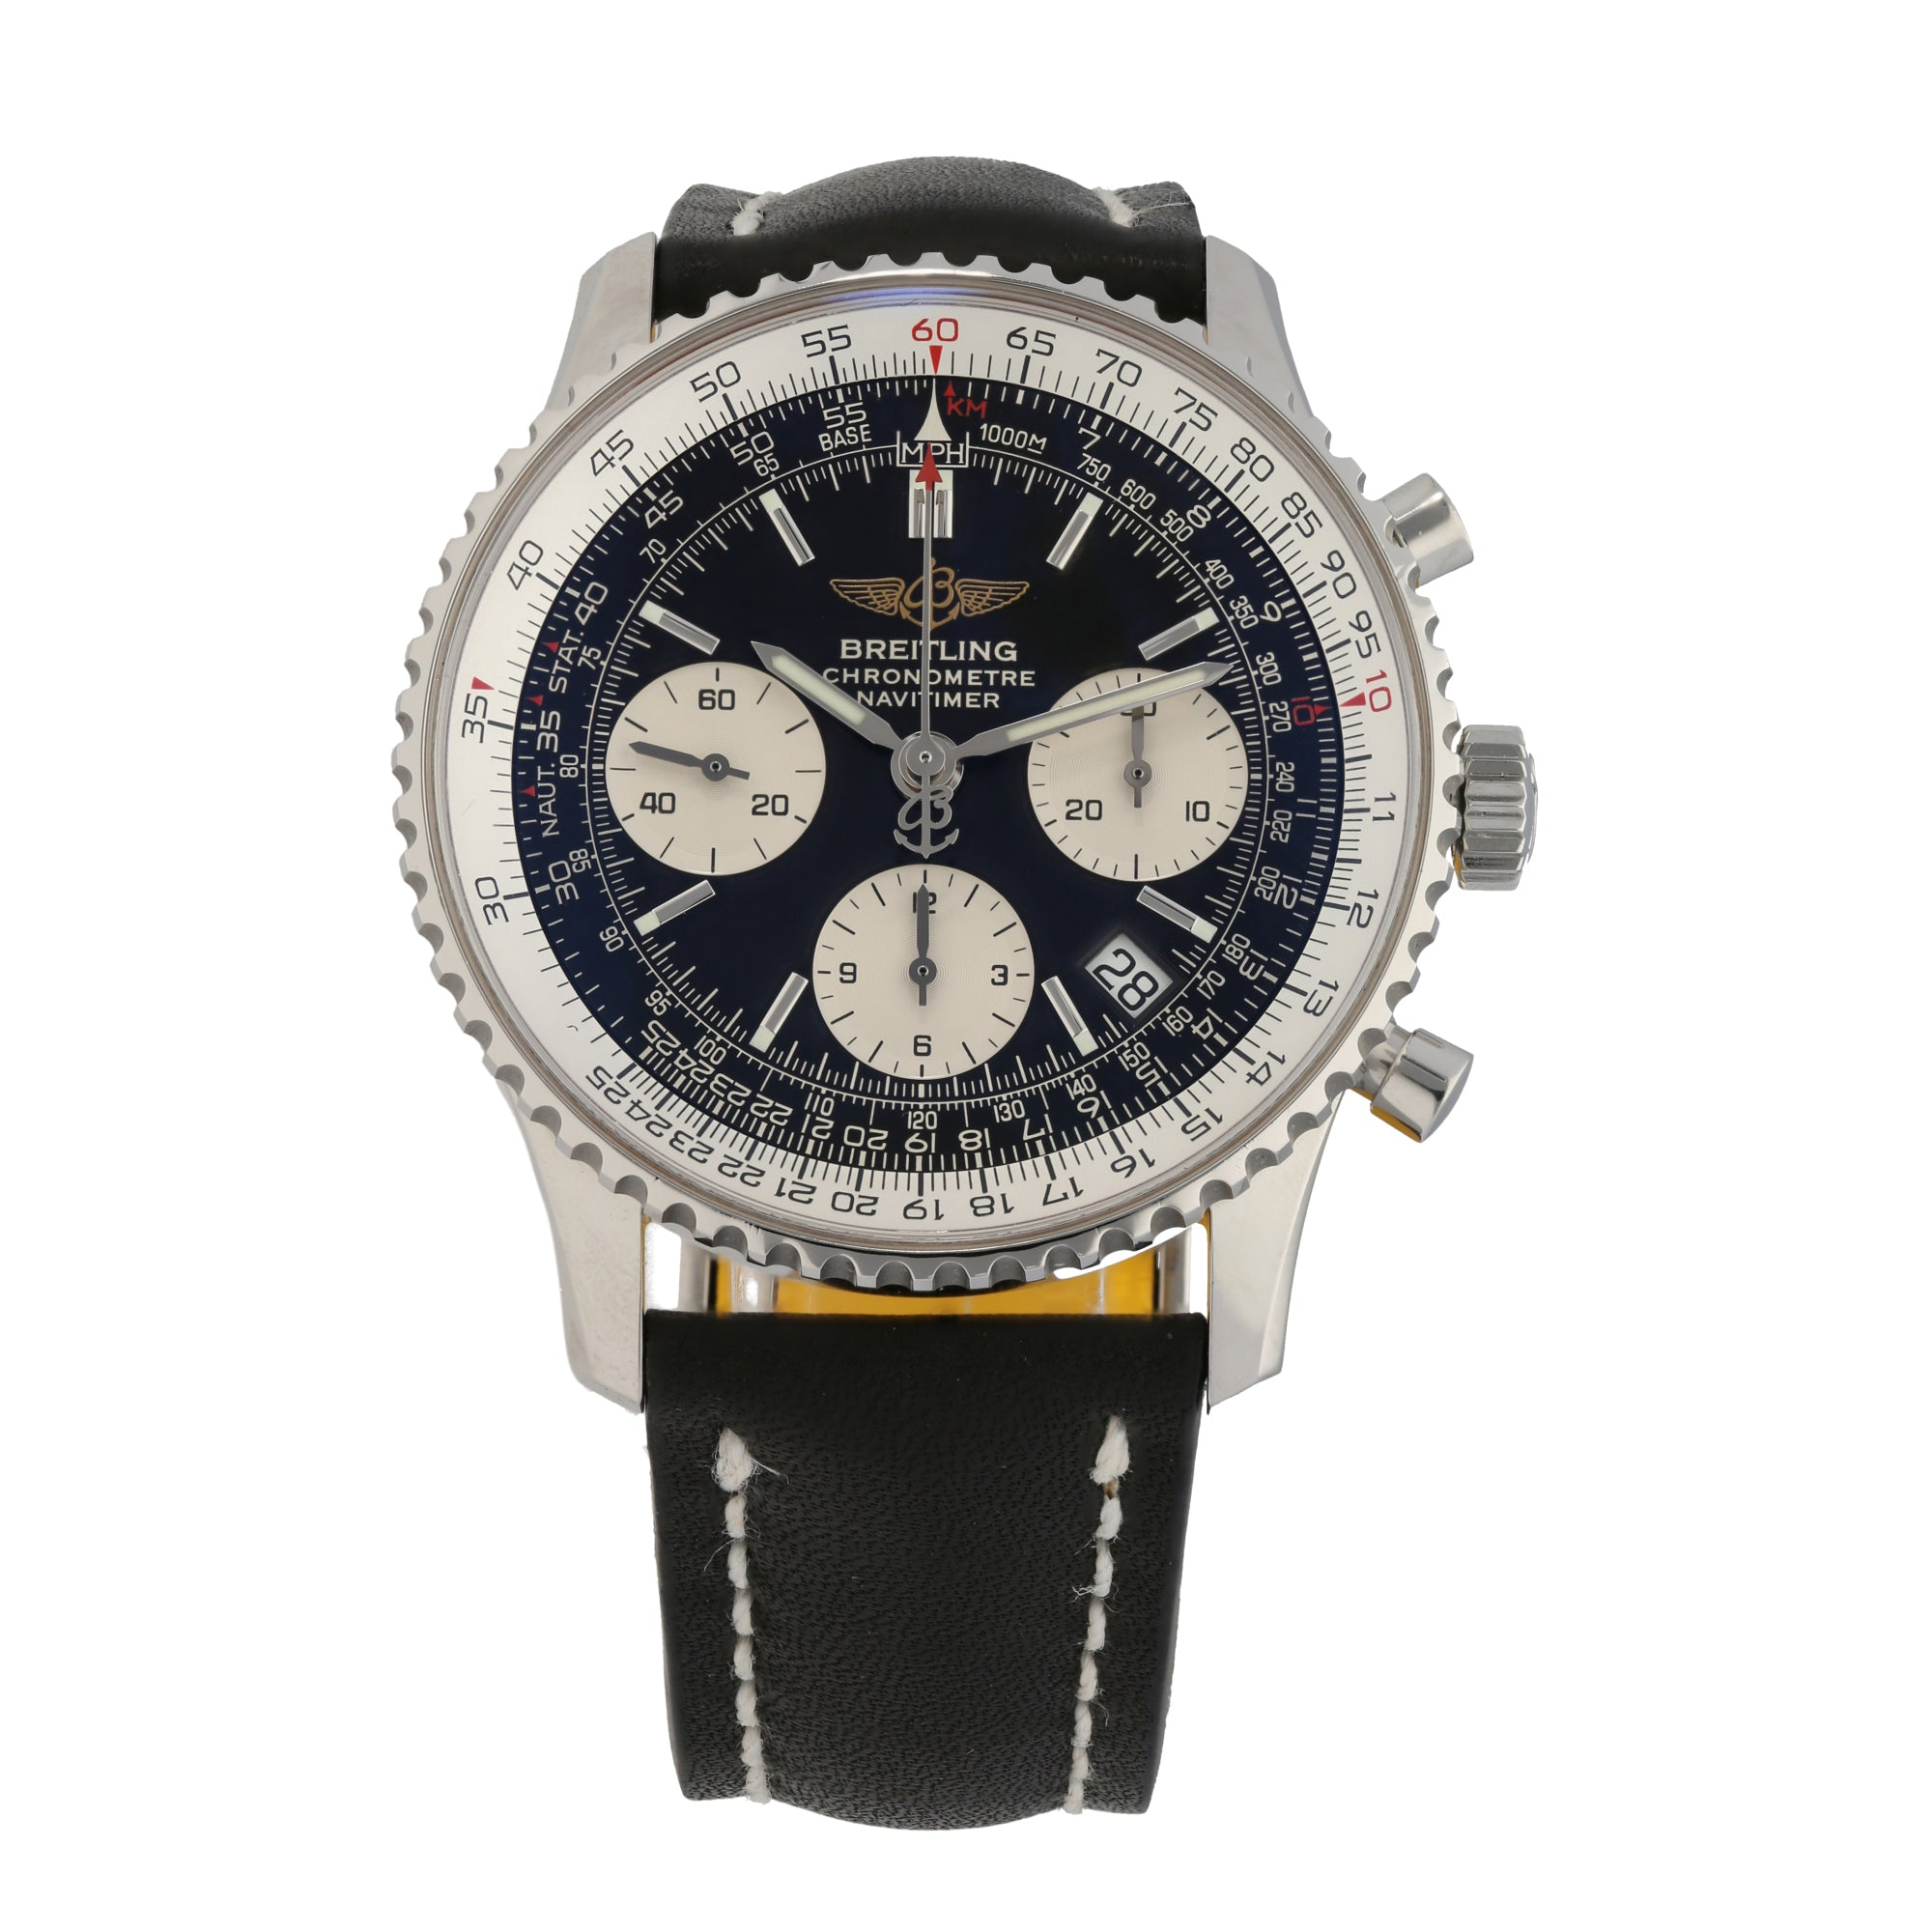 Breitling Navitimer A23322 42mm Stainless Steel Mens Watch